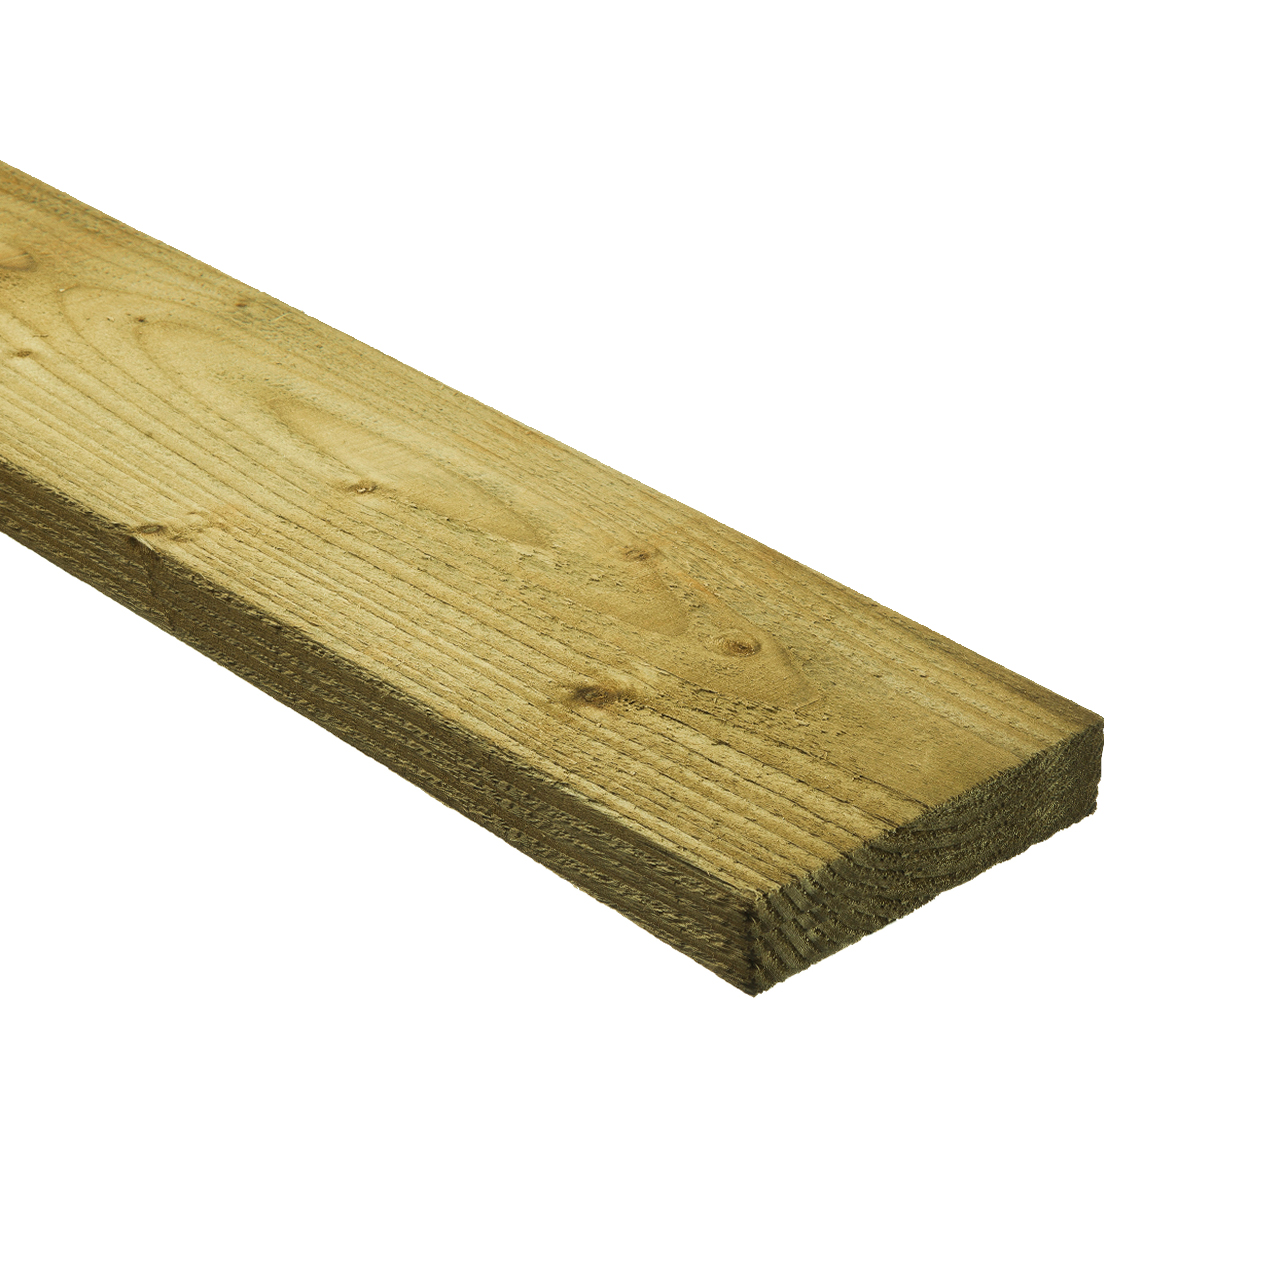 47mm x 150mm Rough Sawn Carcassing Green Treated image 0